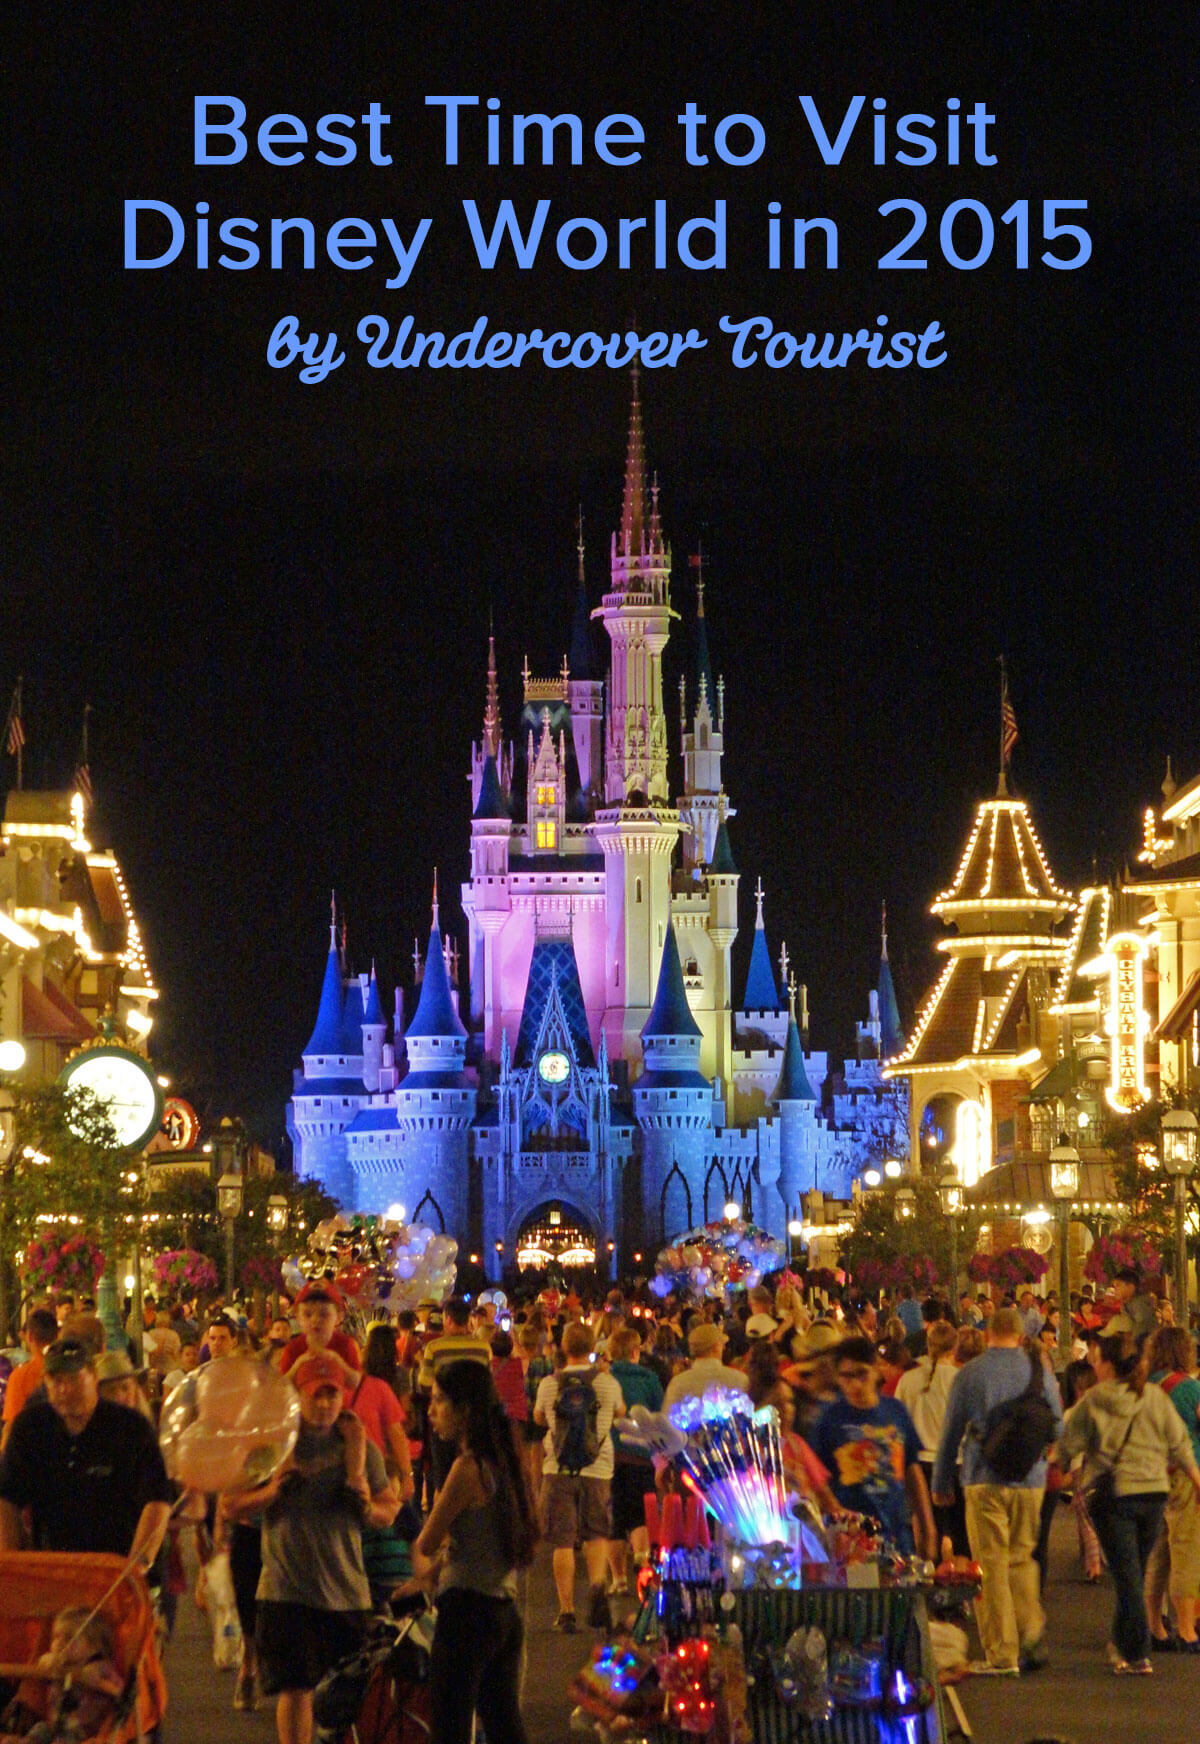 best time to visit Disney World in 2015